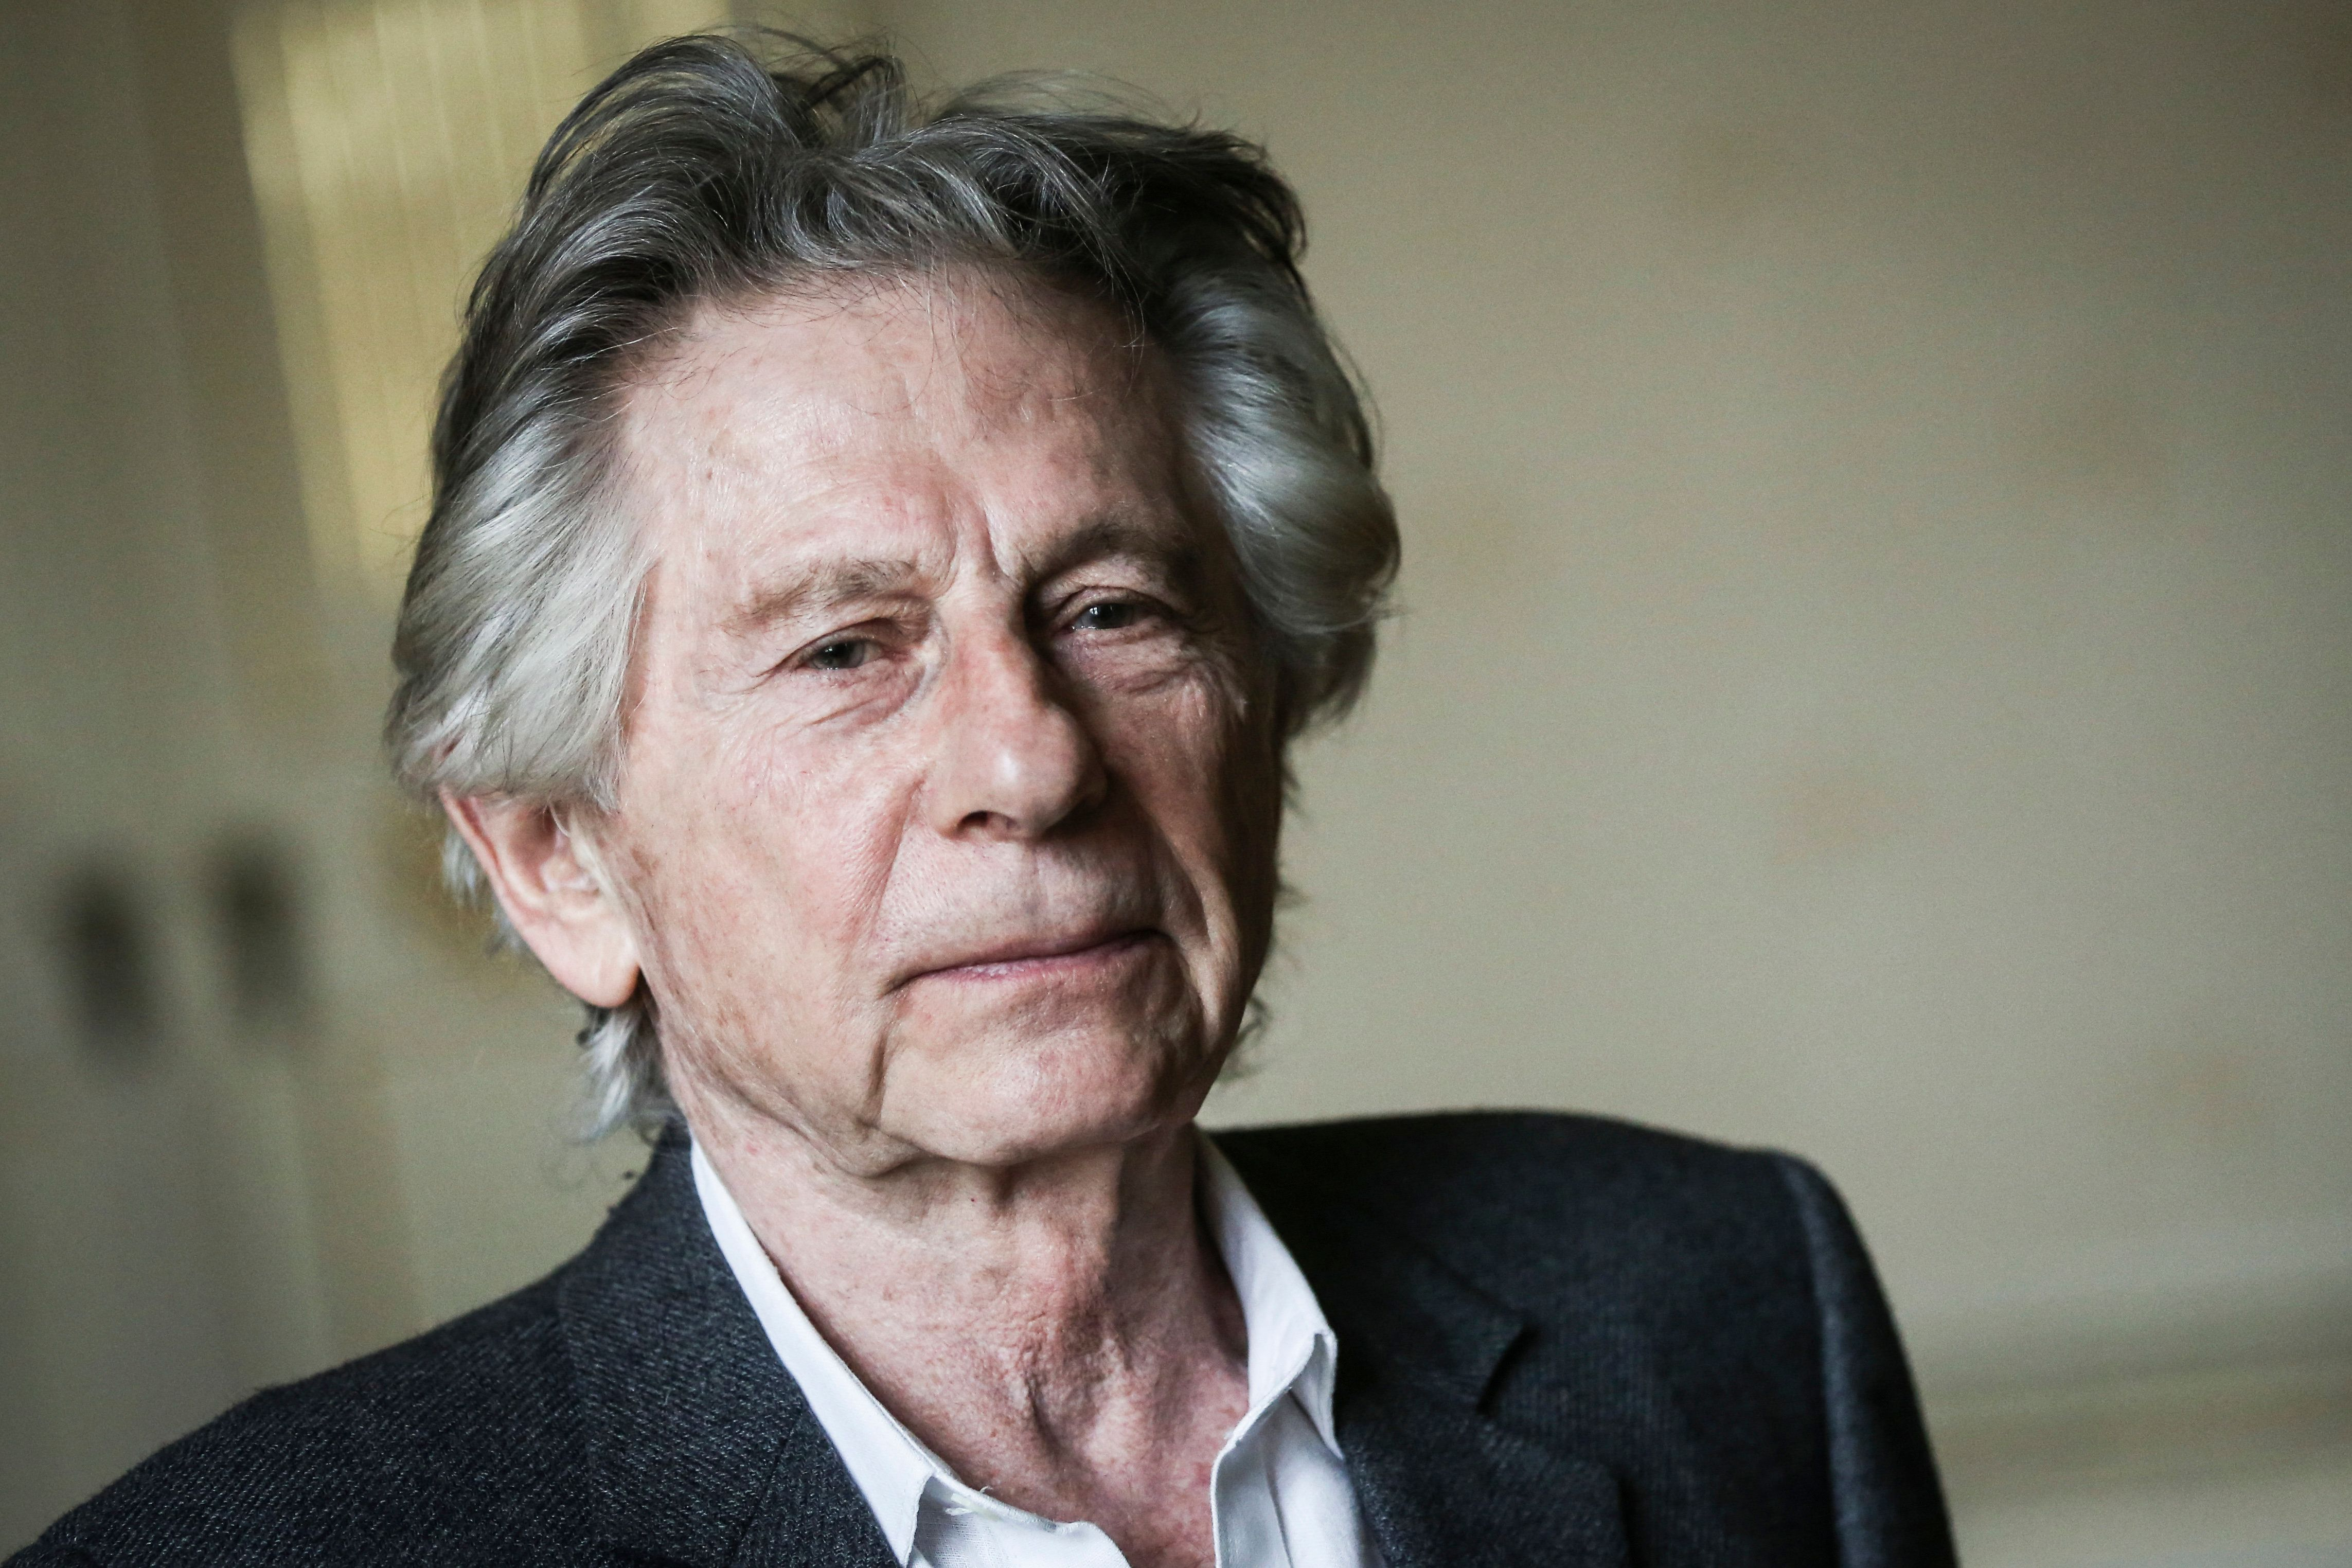 Director Roman Polanski in Krakow, Poland, in May 2018. He pleaded guilty to statutory rape in 1977 and...